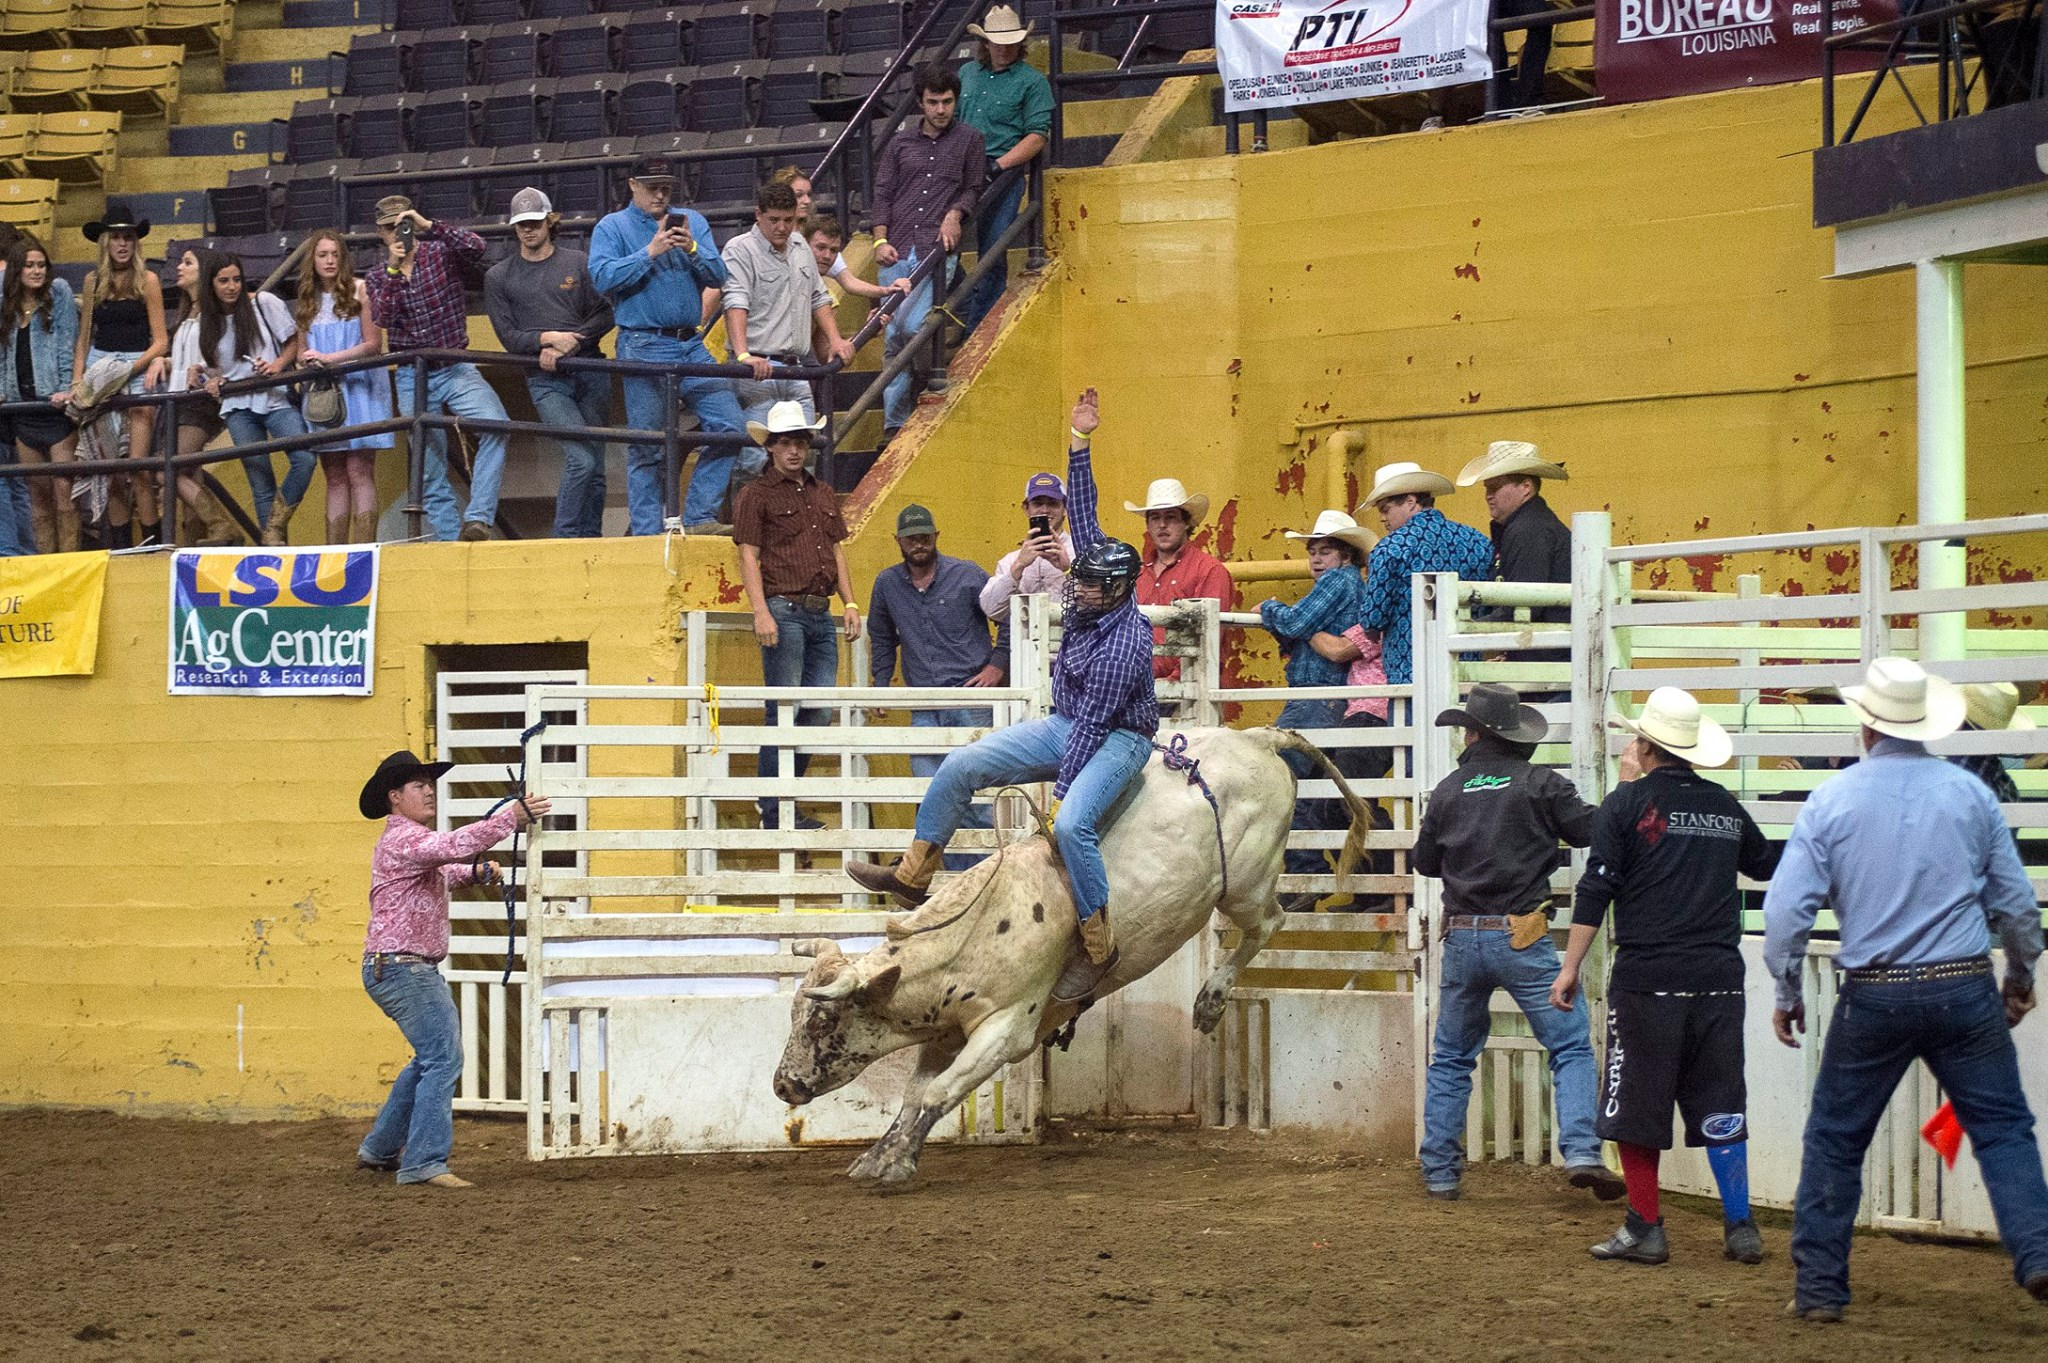 rodeo buckingg good pic